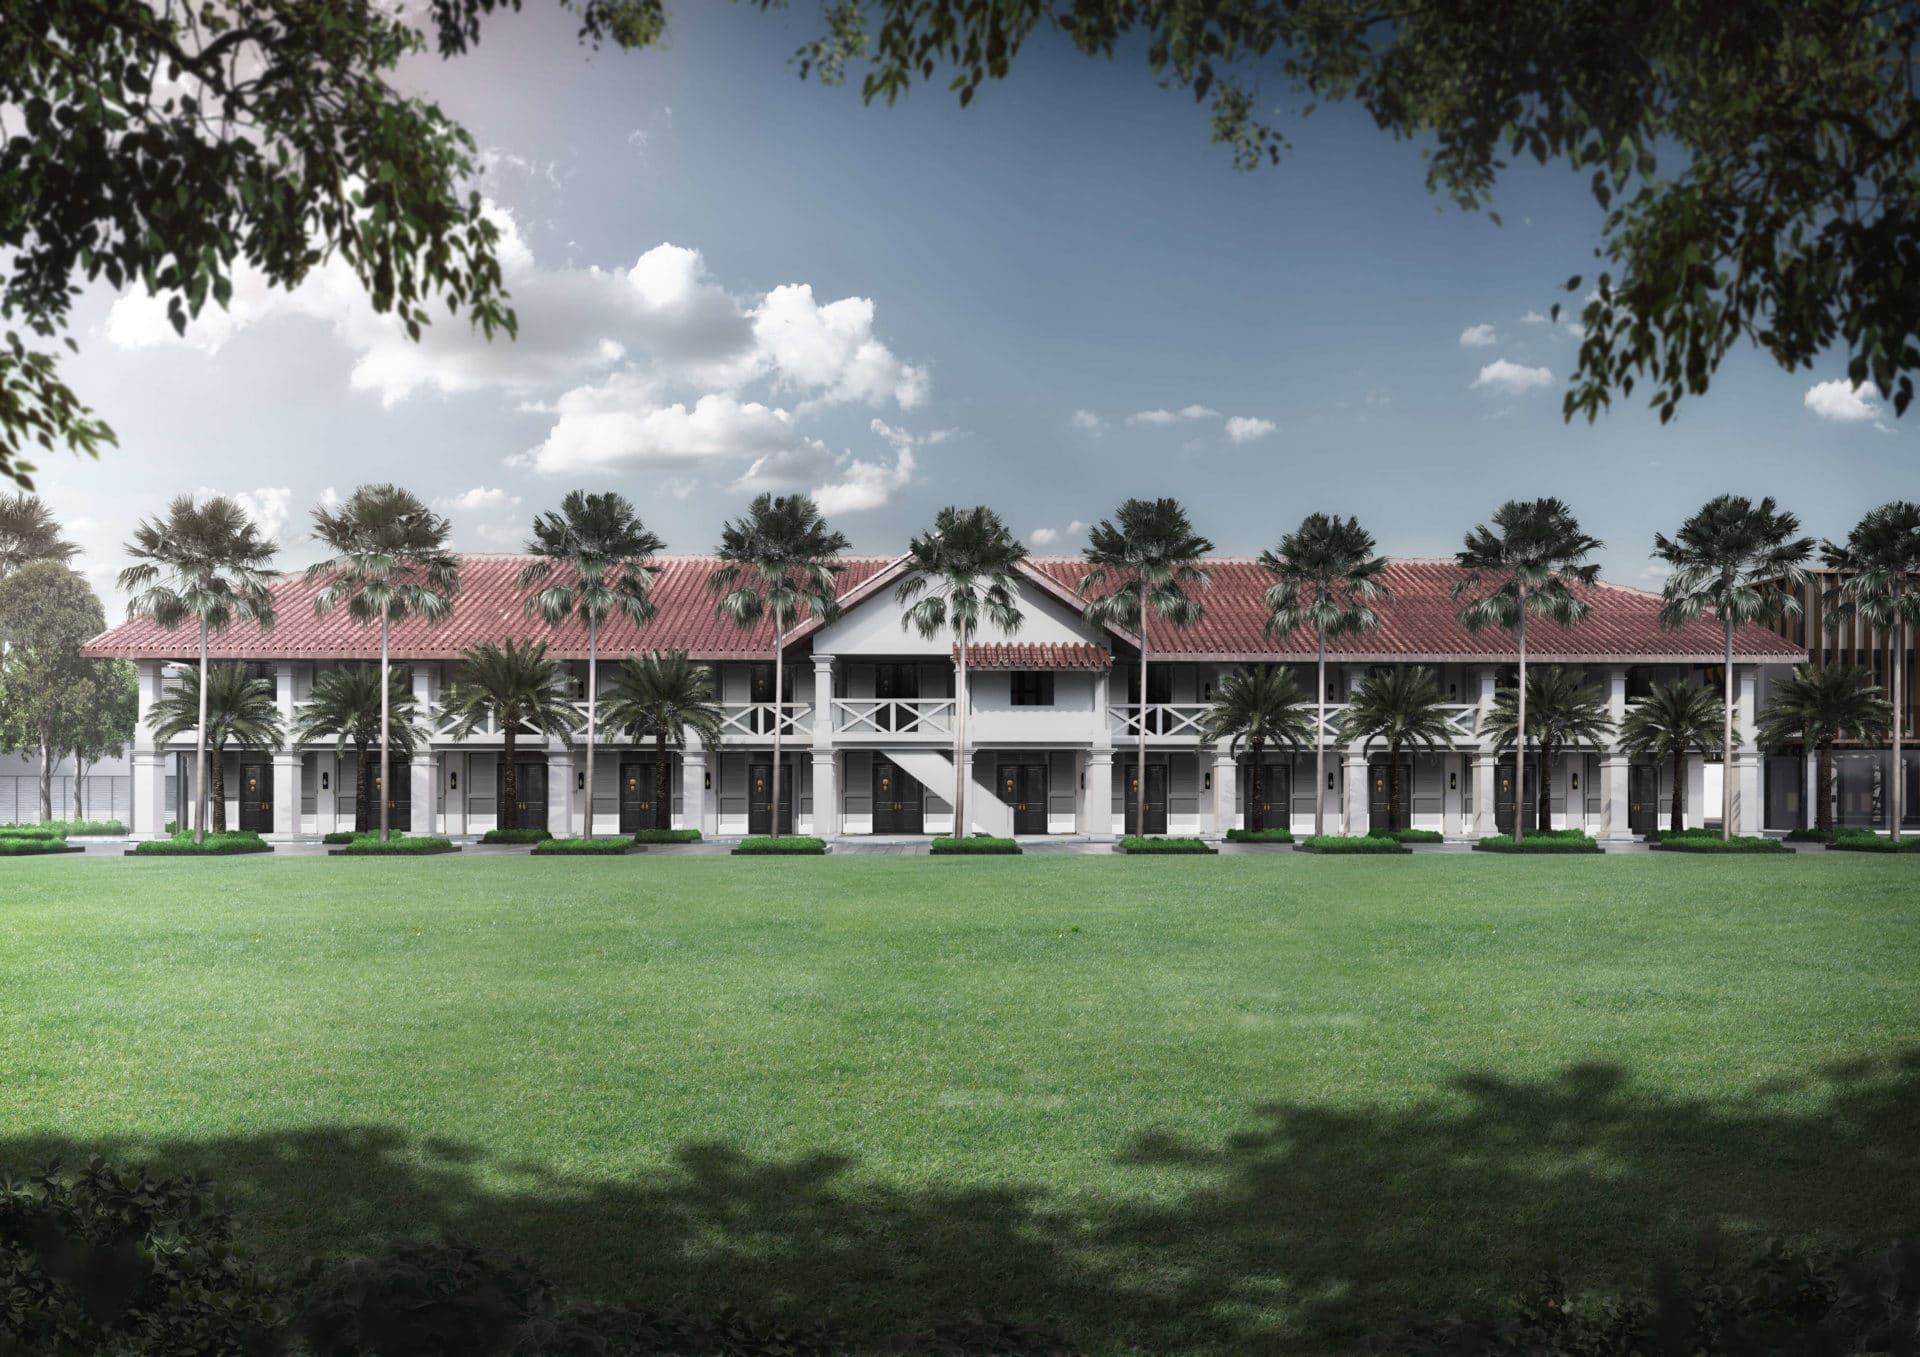 Get a taste of colonial luxury with The Barracks Hotel